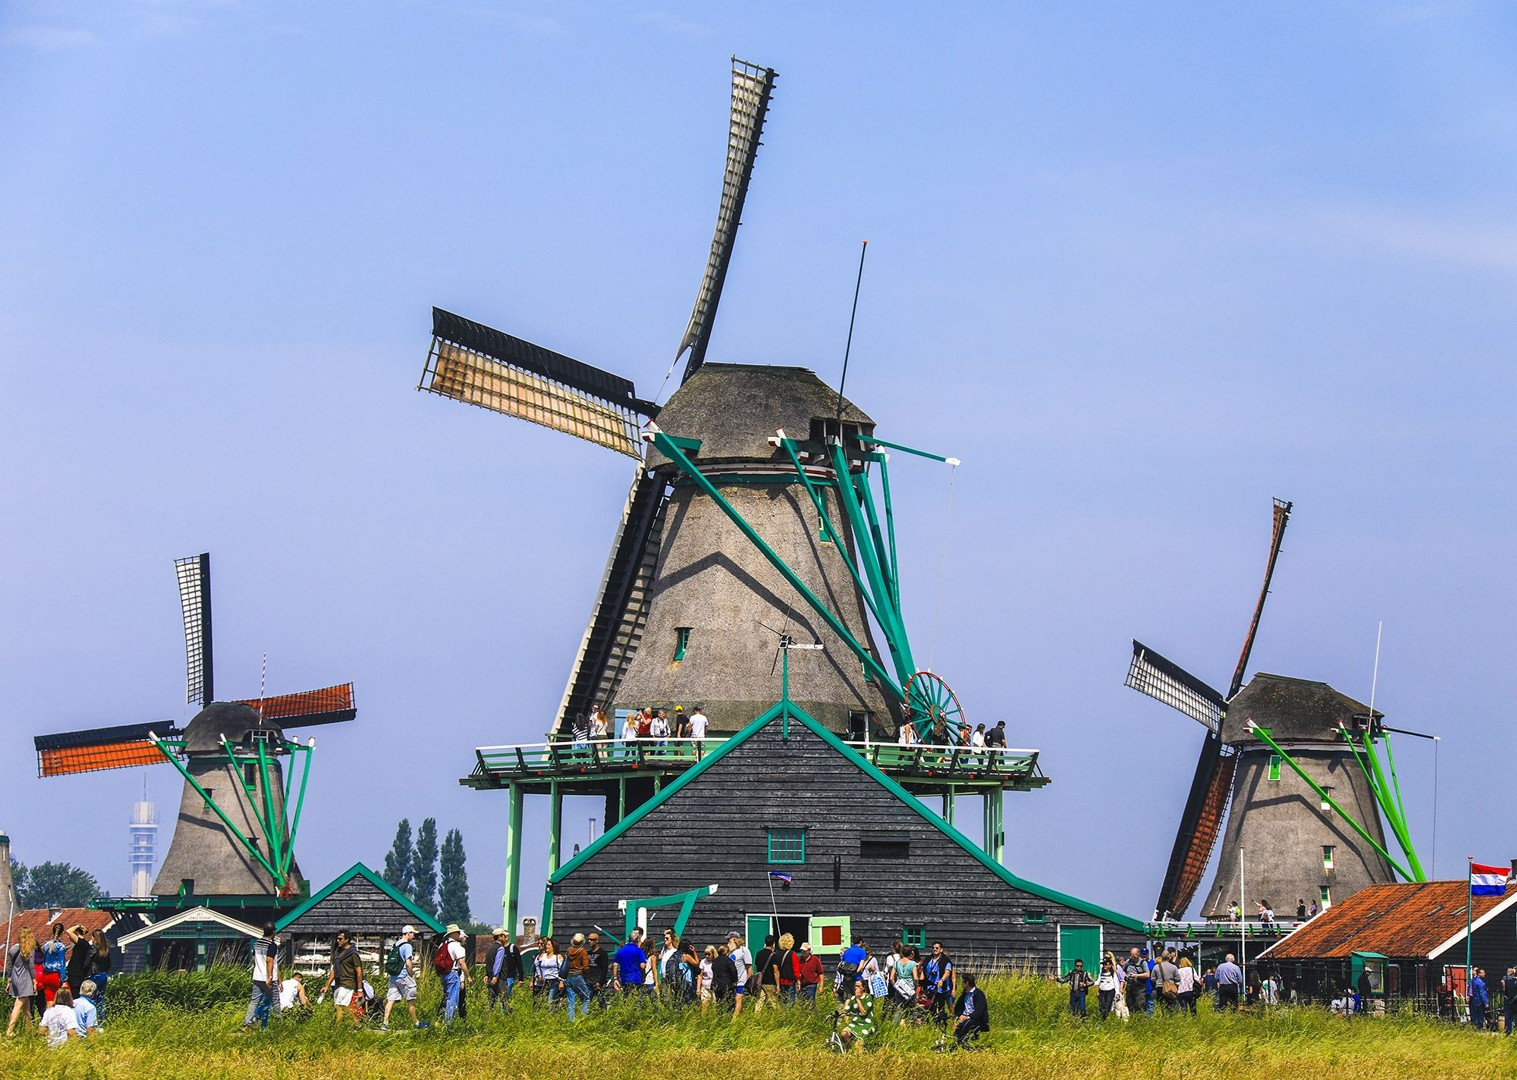 zaanse-schans-zaandam-holland-amsterdam-windmills-family-cycling-self-guided.jpg - NEW! Holland - Dutch Discoverer - Canals and Castles - Family Cycling